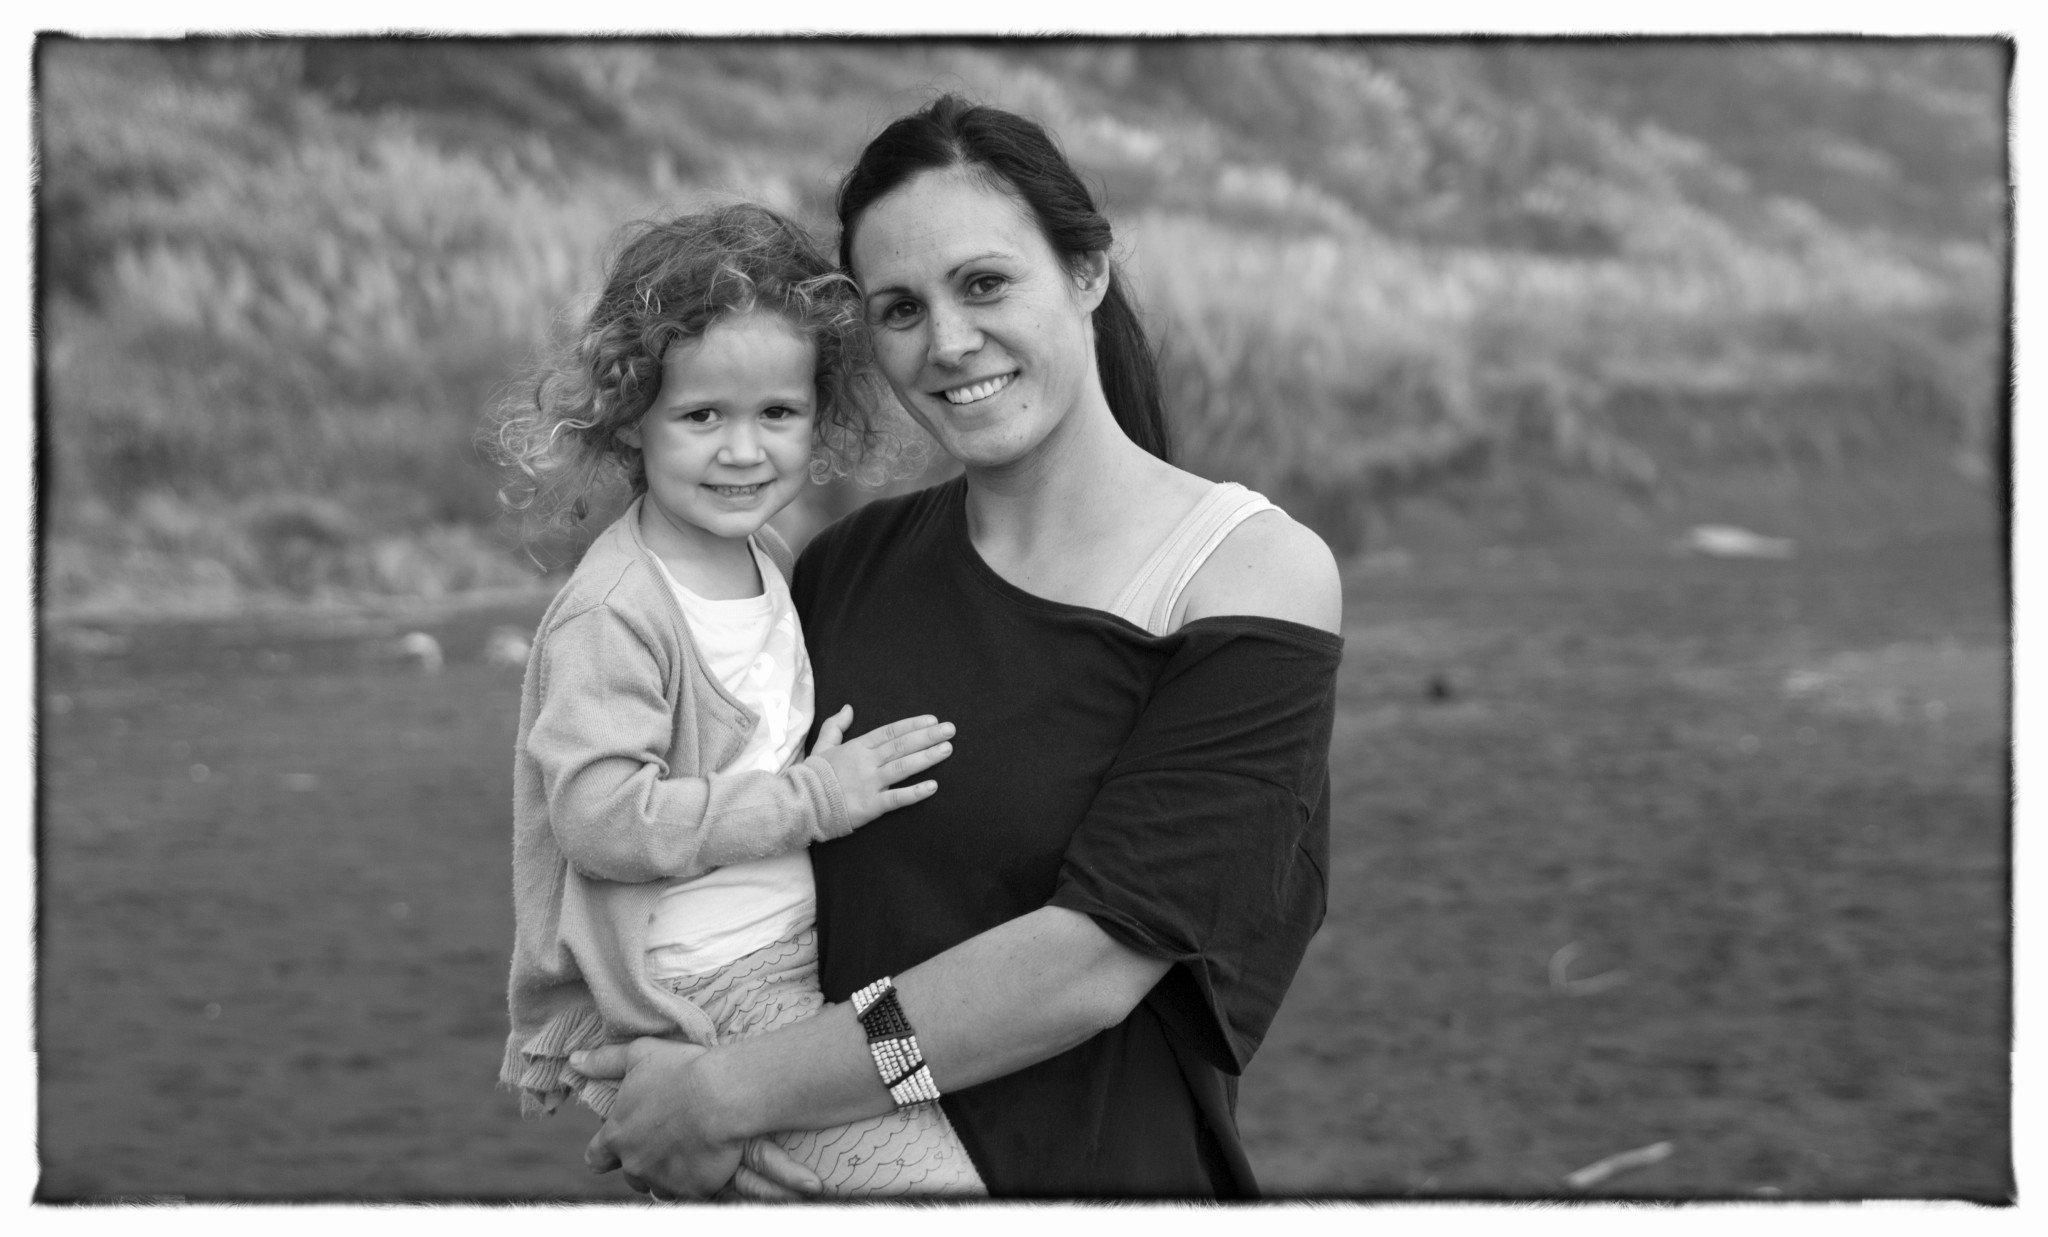 Rochelle & family- Wainui beach-169-Edit-2